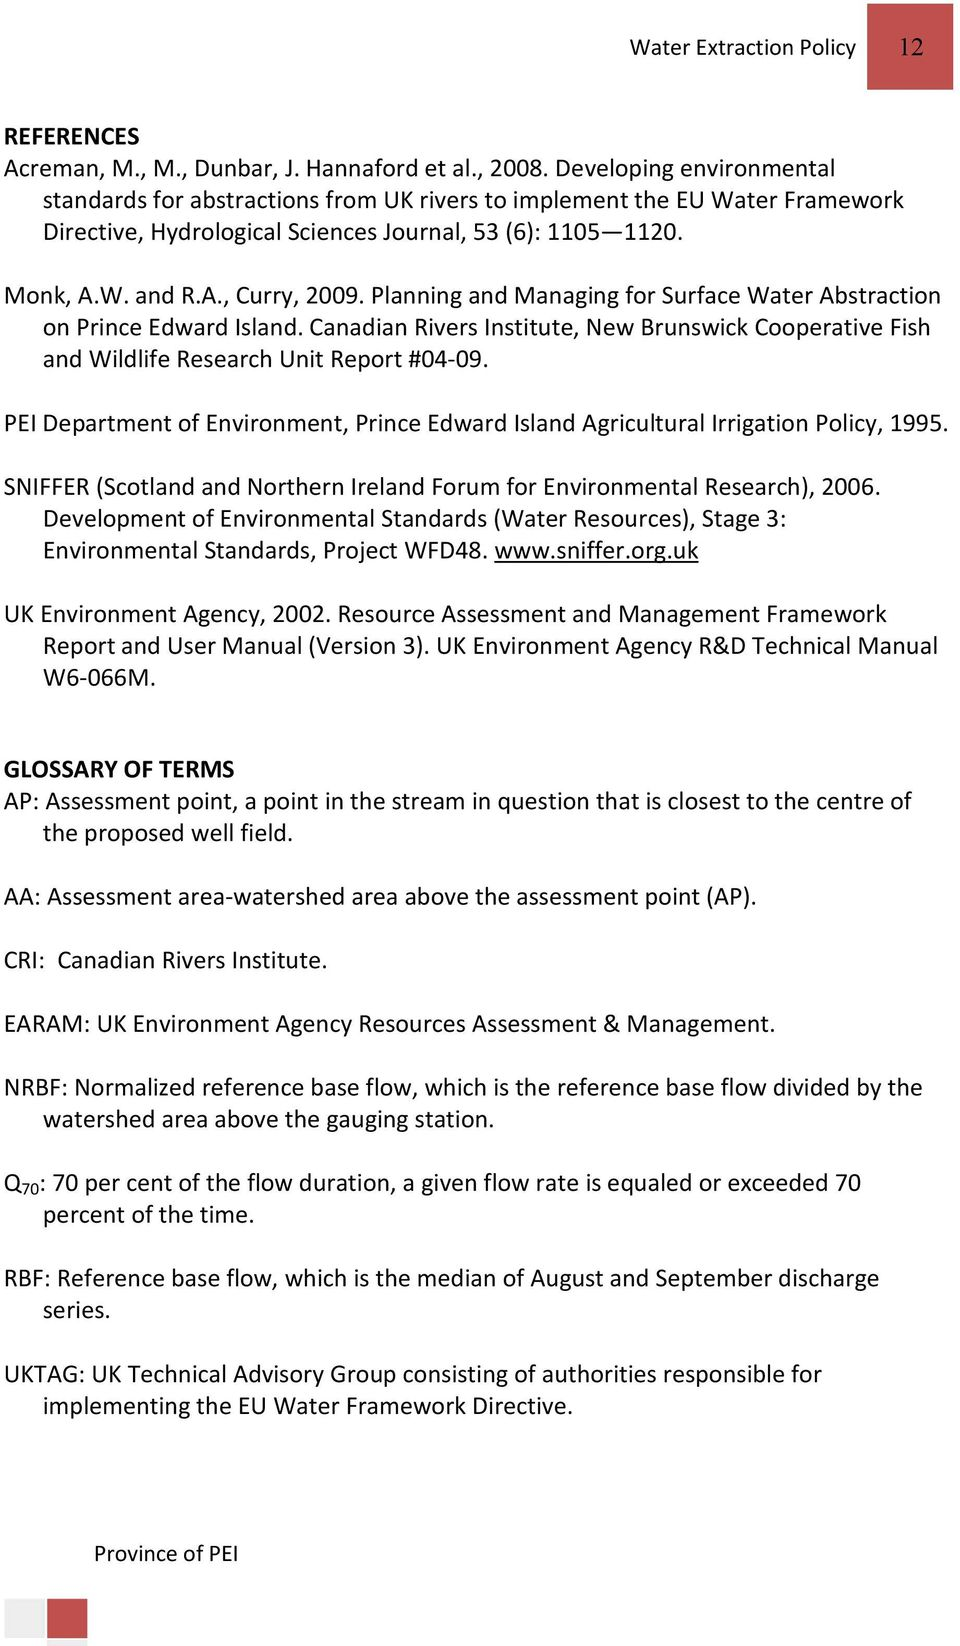 Planning and Managing for Surface Water Abstraction on Prince Edward Island. Canadian Rivers Institute, New Brunswick Cooperative Fish and Wildlife Research Unit Report #04-09.